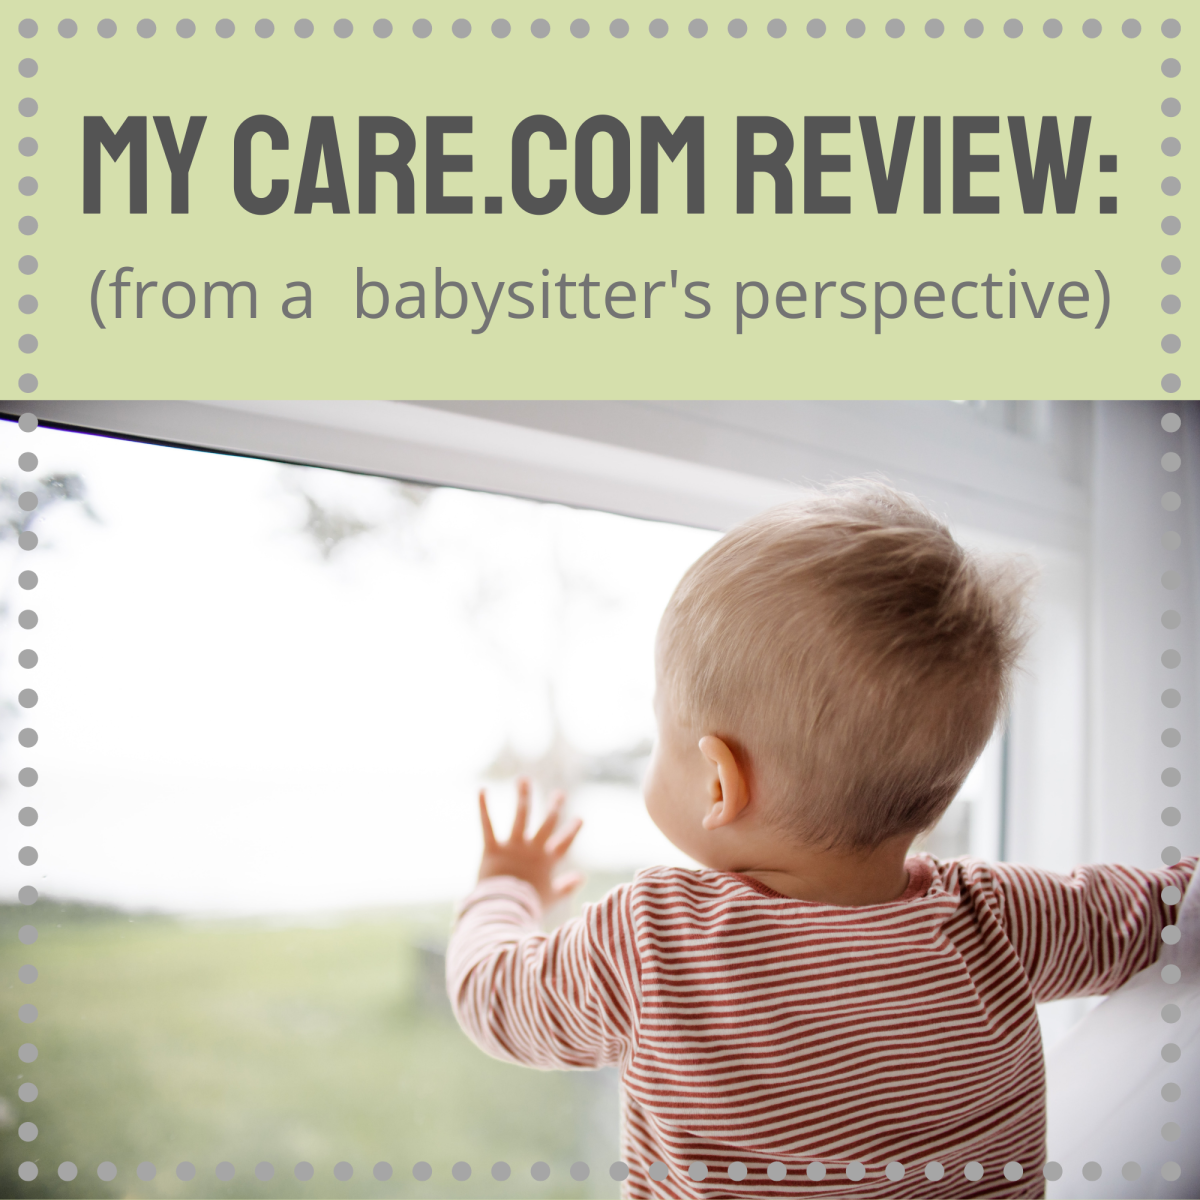 My review of Care.com, from the caregiver's perspective.